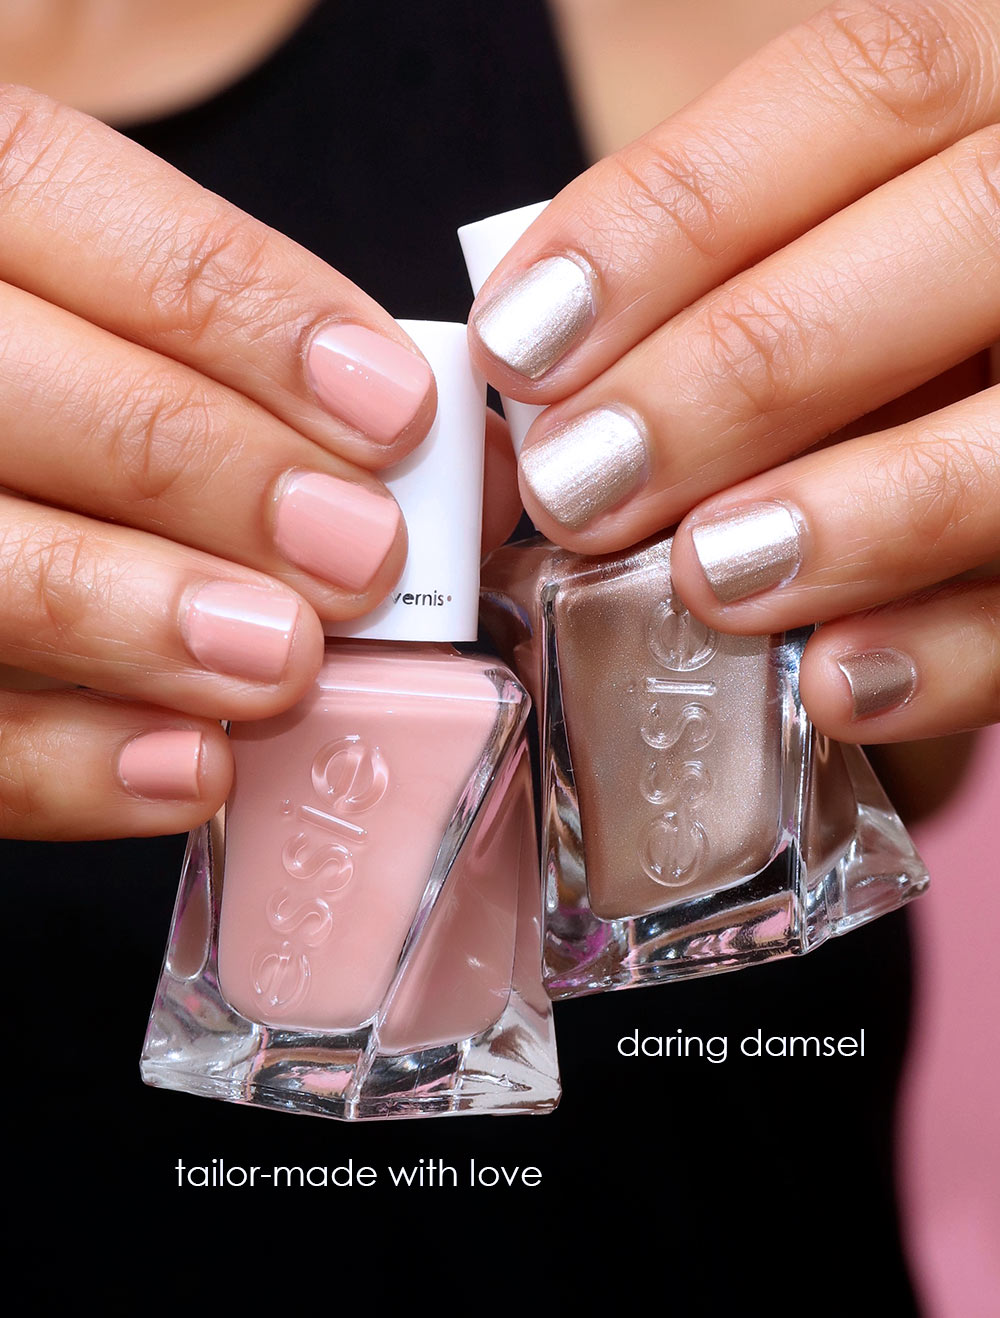 essie taylor made with love daring damsel